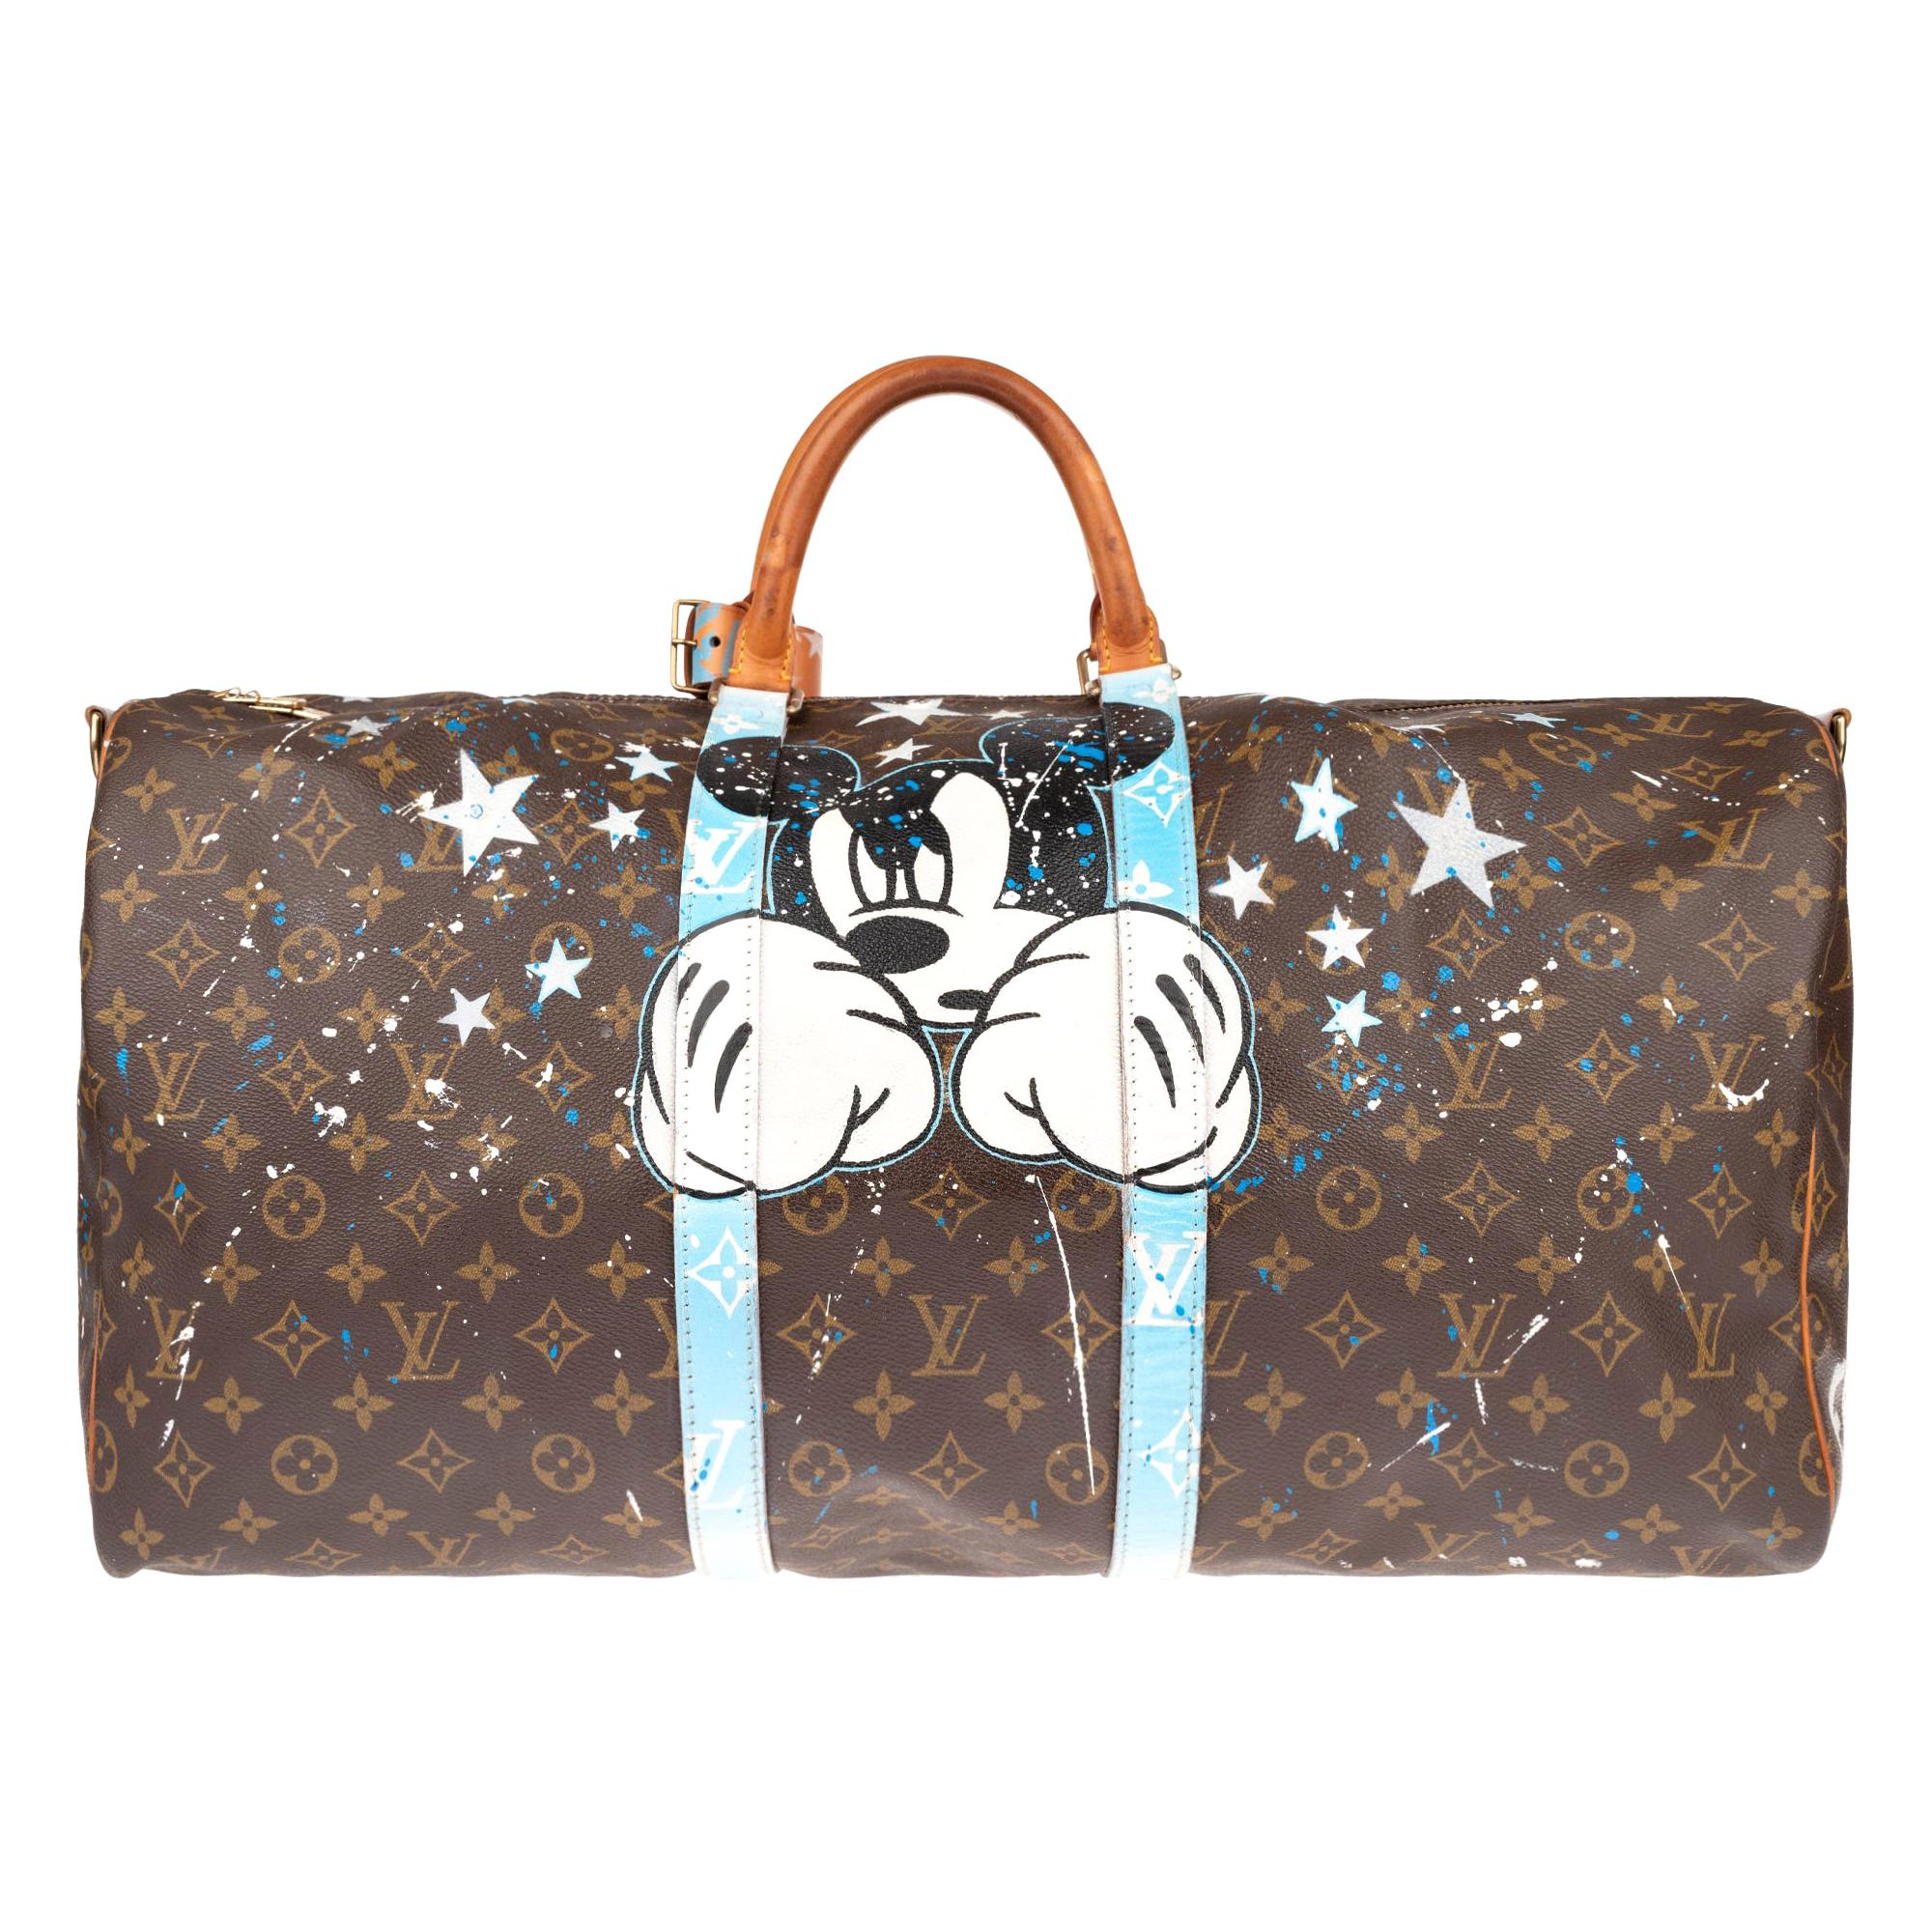 """Travel bag Louis Vuitton Keepall 55 customized """"Fight Club"""" by the artist PatBo!"""